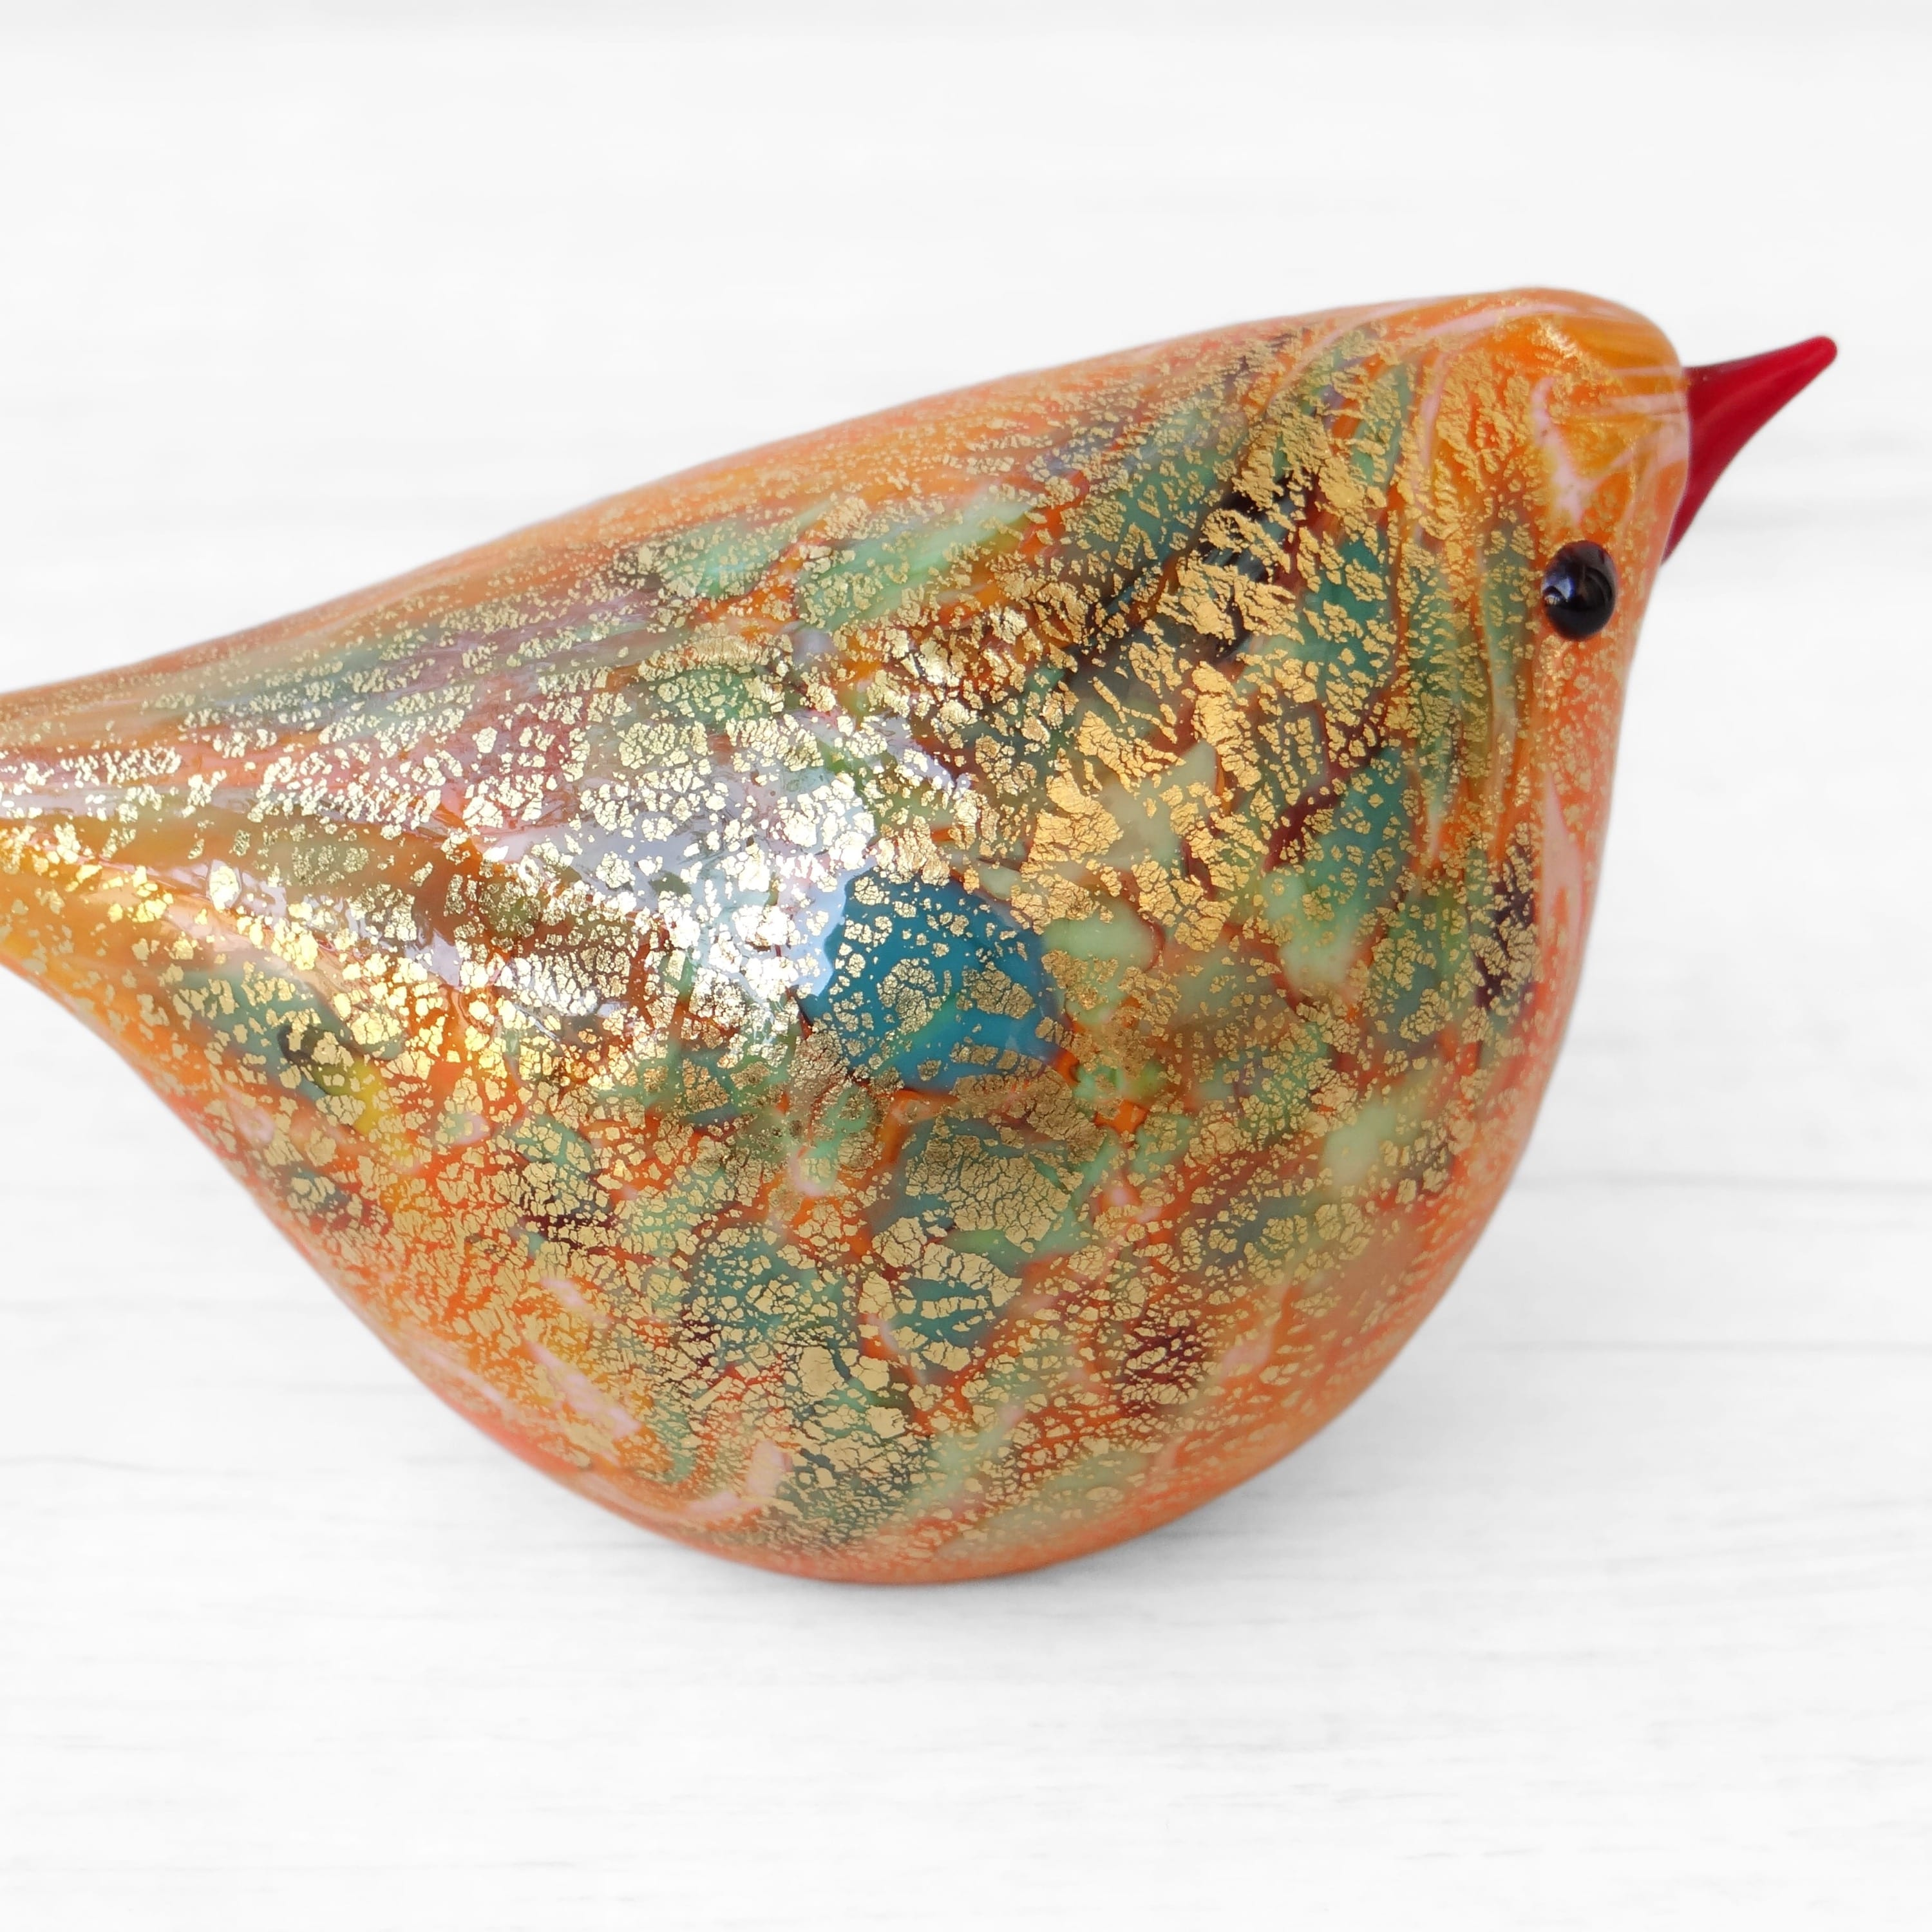 Orange and Green Murano Glass Bird, handcrafted in Venice - Glass blown creation by Maestro Giorgio Bruno, sold by Miani Venetian Jewelry